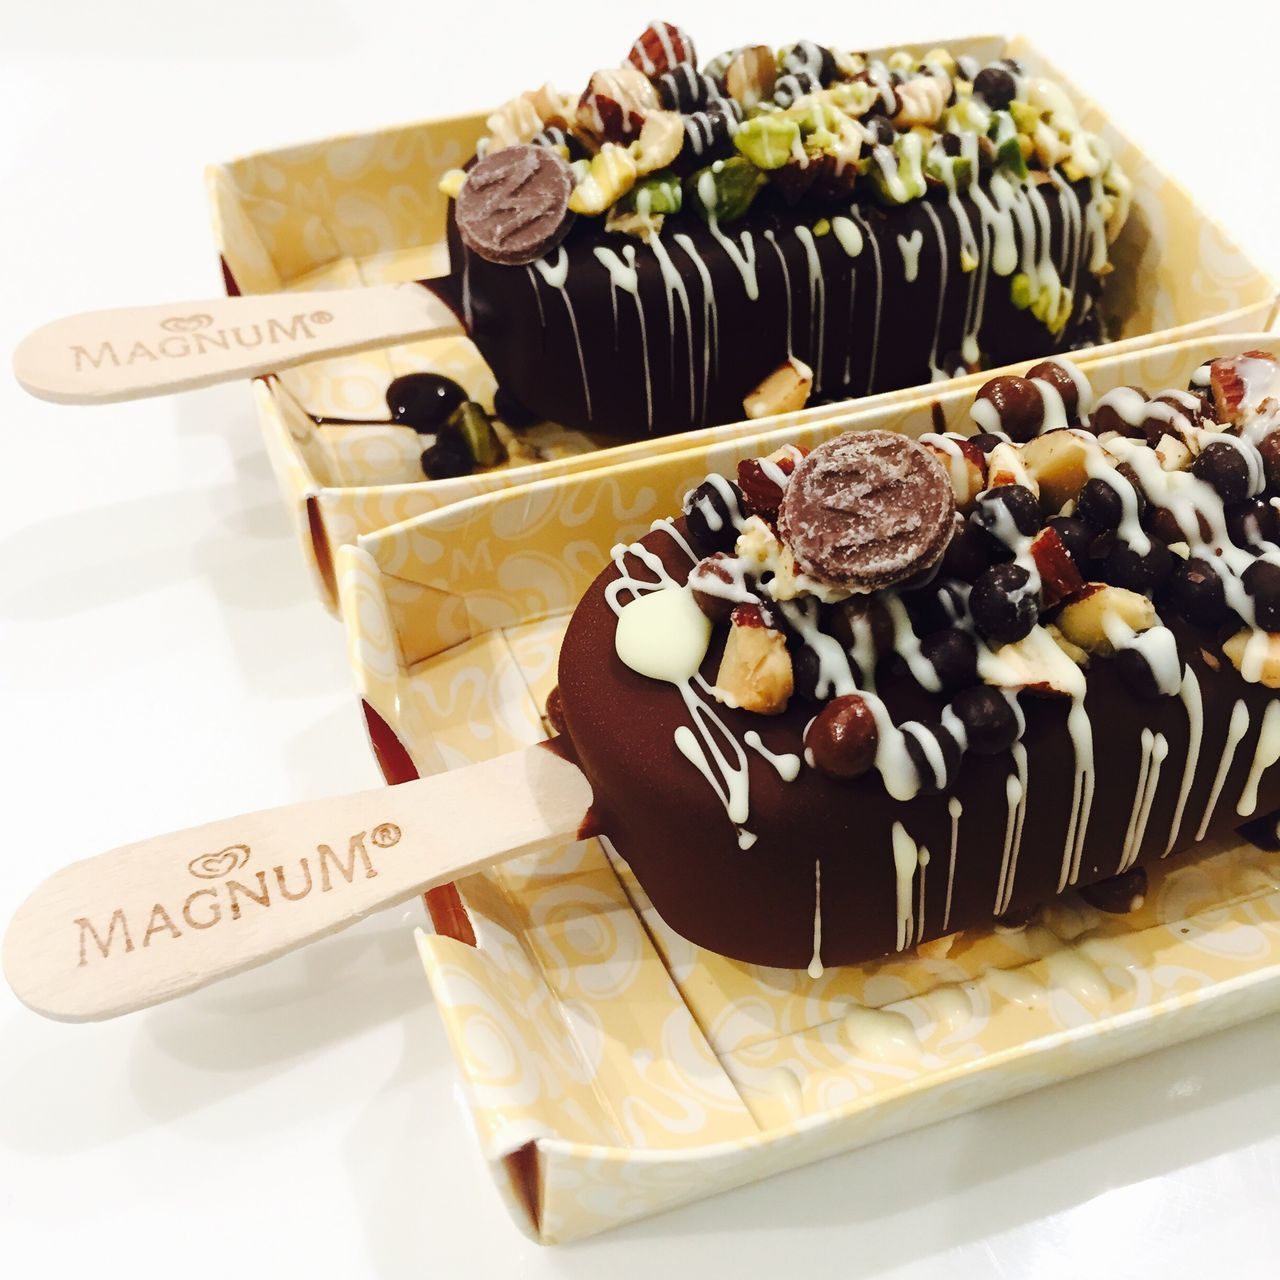 Nofilter Noedit Sweet Food Dessert Food Temptation White Background Close-up Ready-to-eat Philippines Magnum MagnumAlmonds Sweets 2016 Magnumcebu Cebu Makeyourown Creative Temptation Icecream Yummy